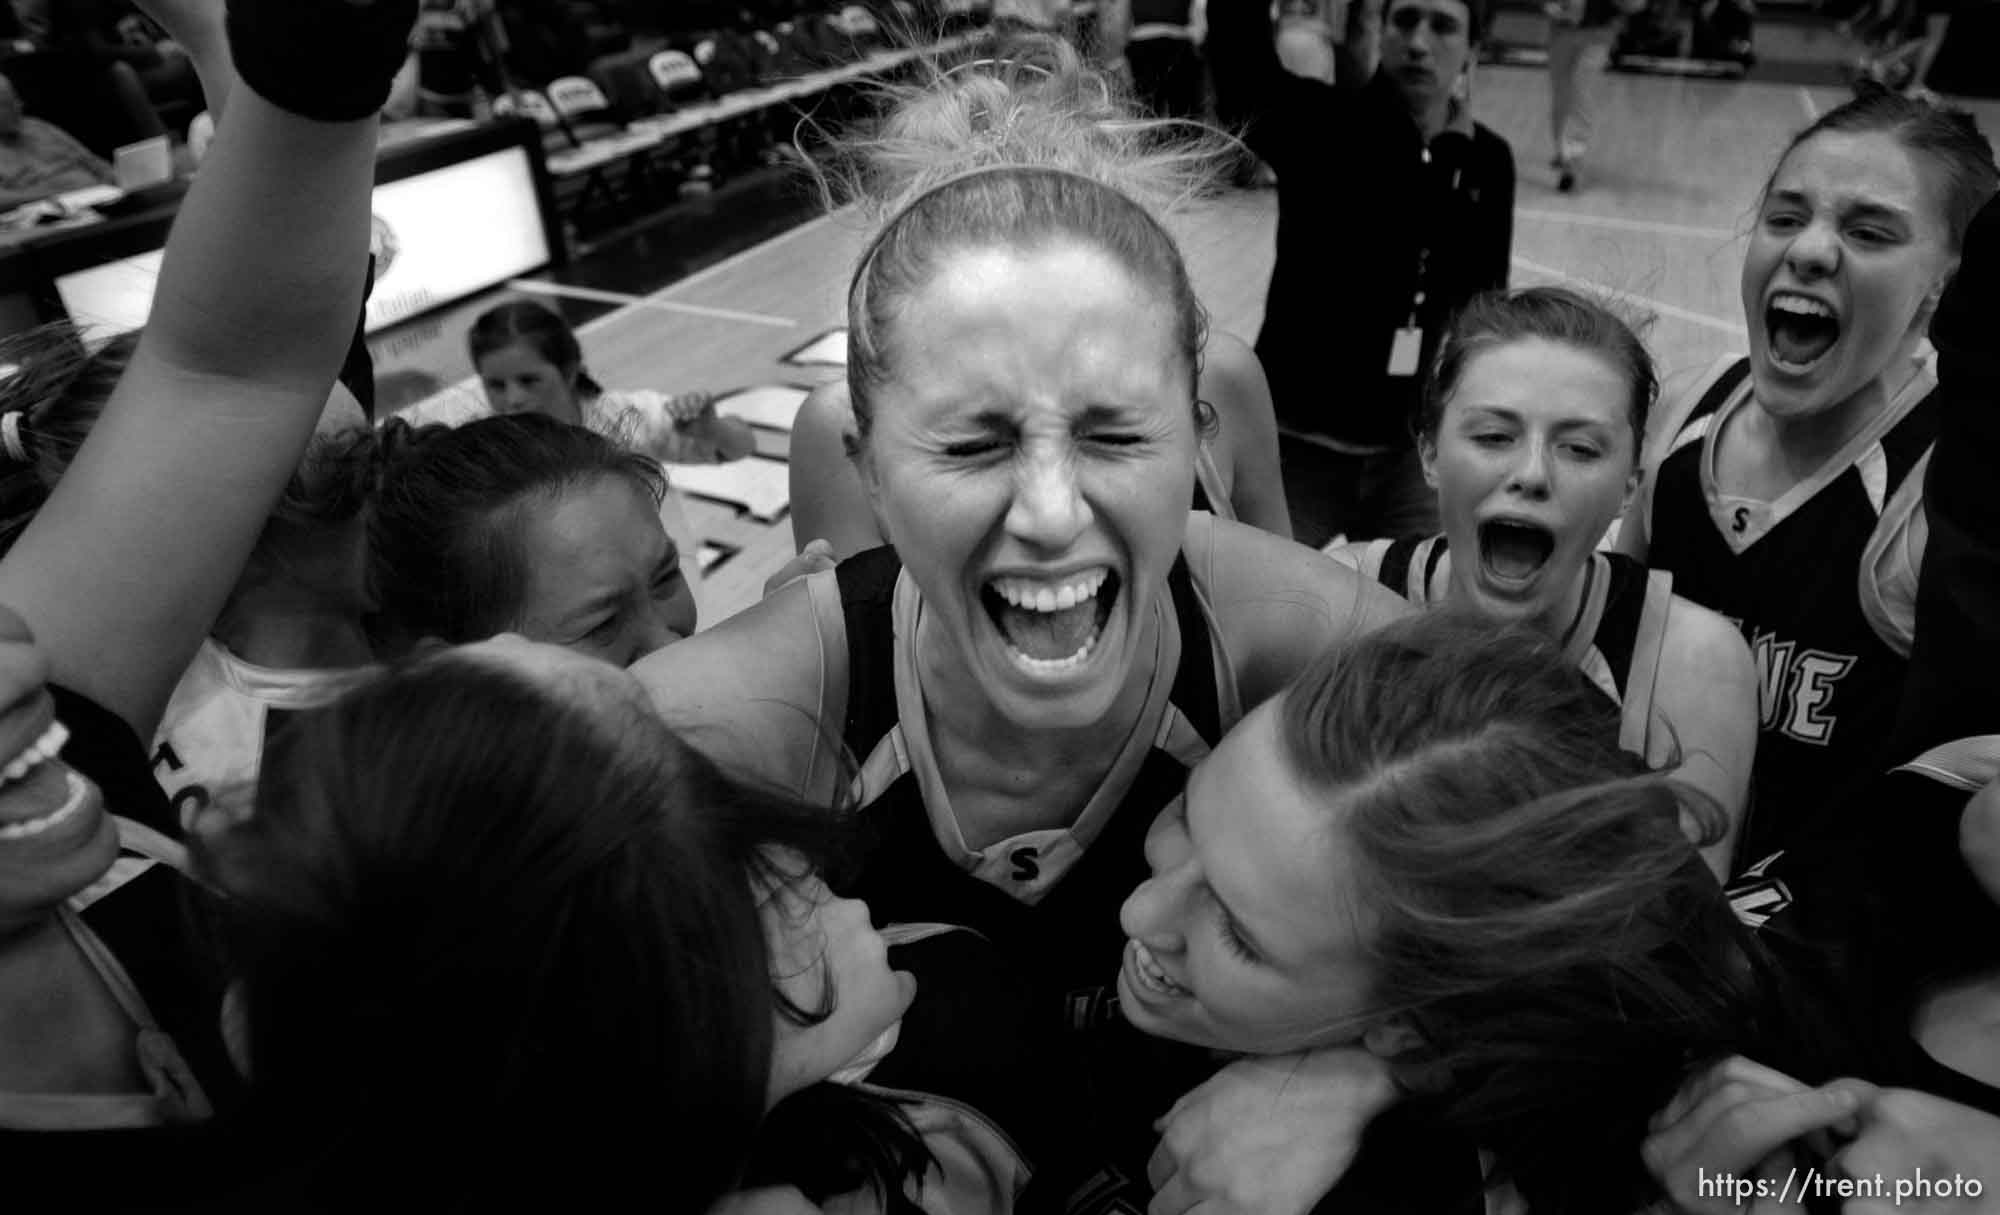 Taylorsville - Skyline's Jenteal Jackson lets out a yell with her teammates, celebrating their state championship victory. American Fork vs. Skyline, 5A State Girls high school basketball state championship game at Salt Lake Community College, Saturday, February 23, 2008.